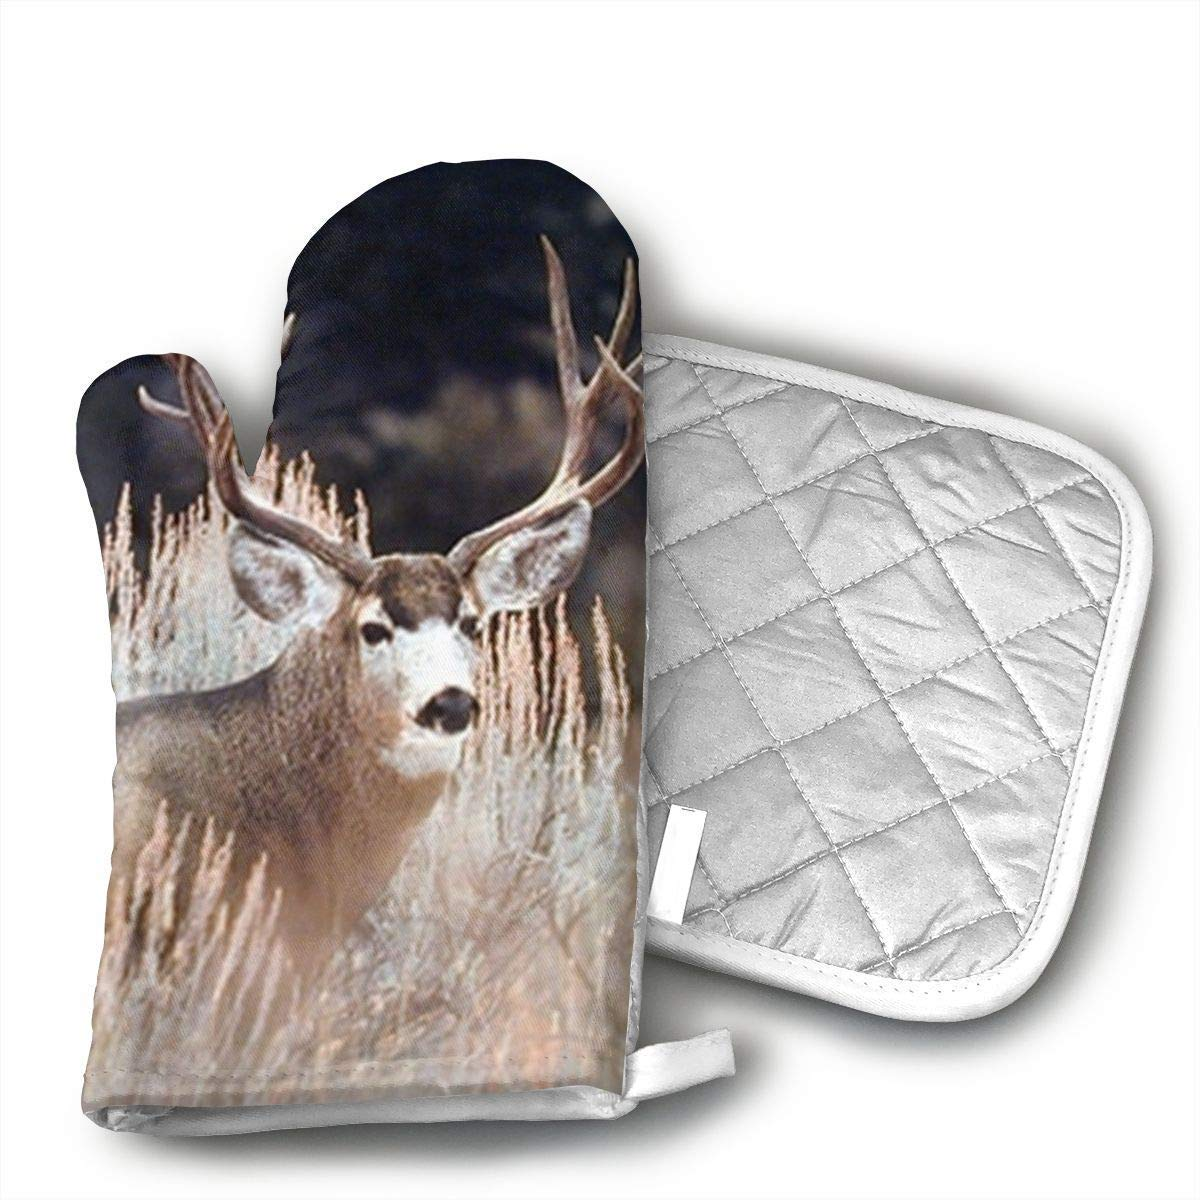 NoveltyGloves Large Mule Deer Big Antler Rack Animal Oven Mitts,Professional Heat Resistant Microwave BBQ Oven Insulation Thickening Cotton Gloves Baking Pot Mitts Soft Inner Lining Kitchen Cooking